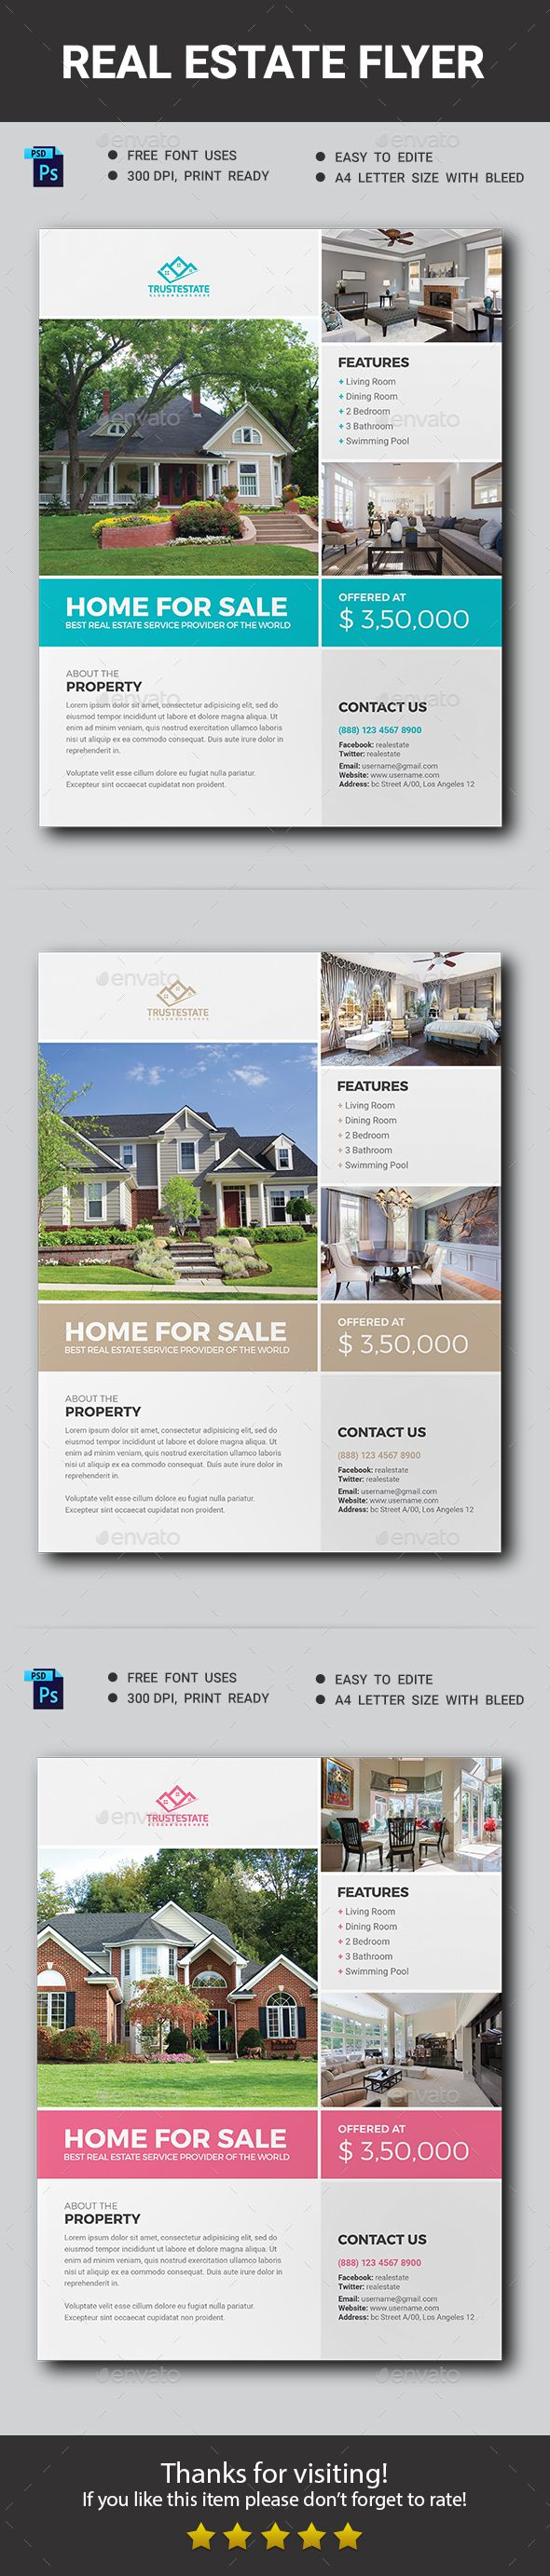 ideas about flyer template flyer design real estate flyer